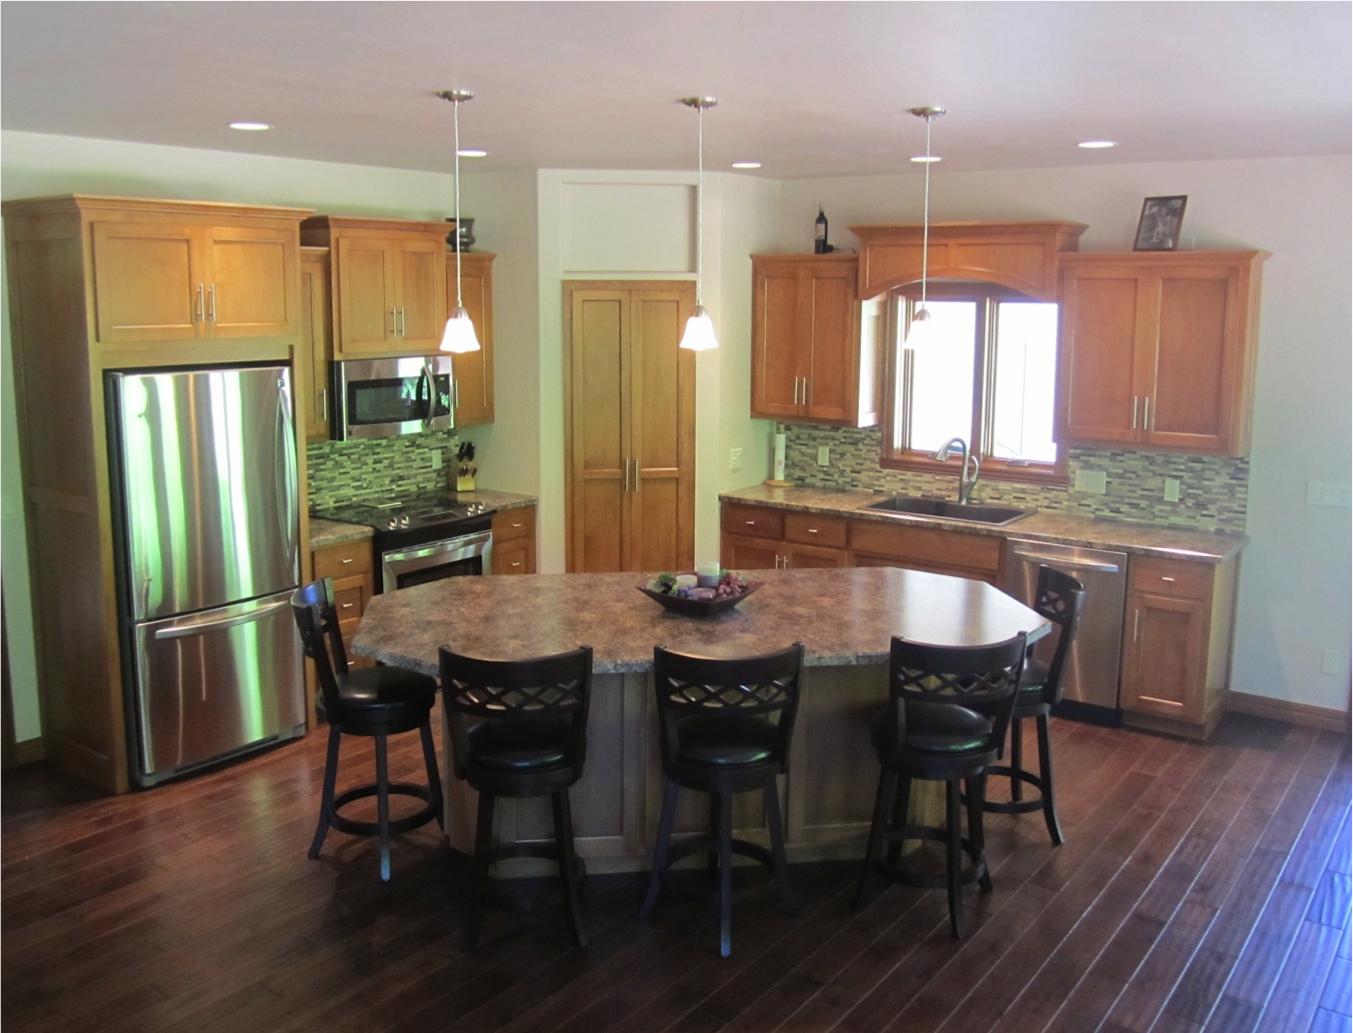 kitchen cabinets green bay wi kitchen cabinets green bay wi distinctive cabinets of 20458